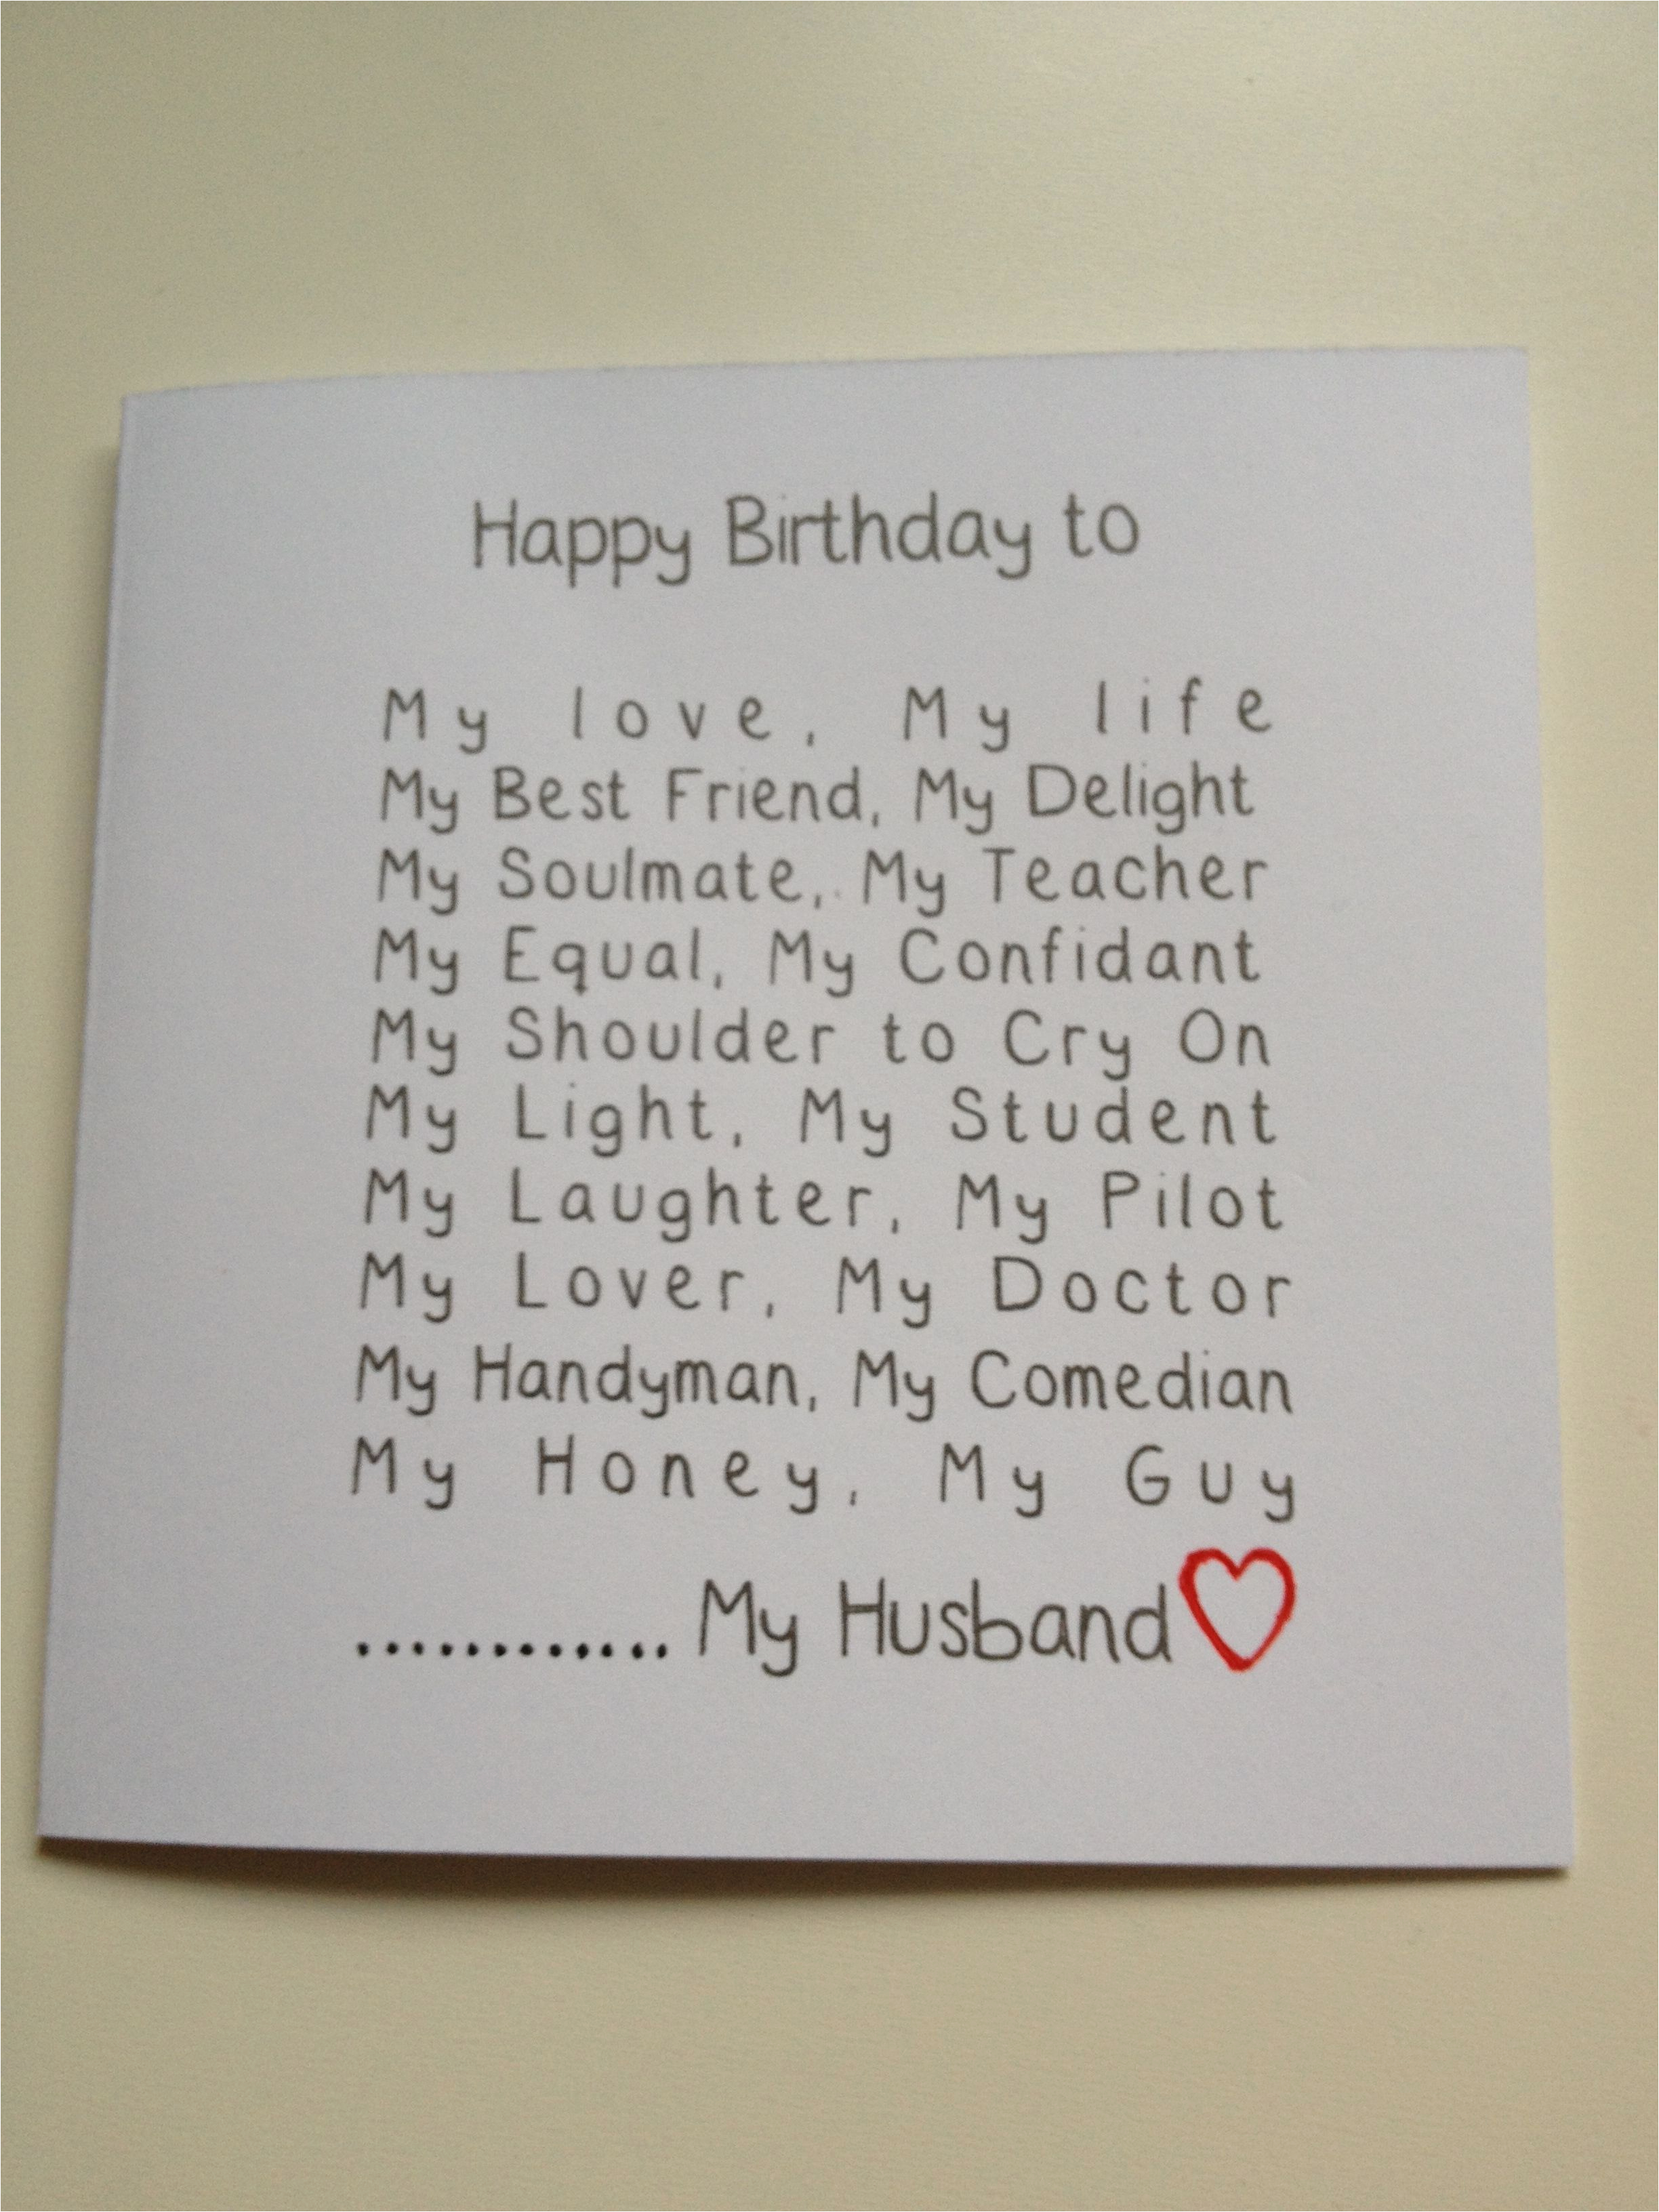 Online Birthday Cards For Husband Handmade Card Funny Adam My Love